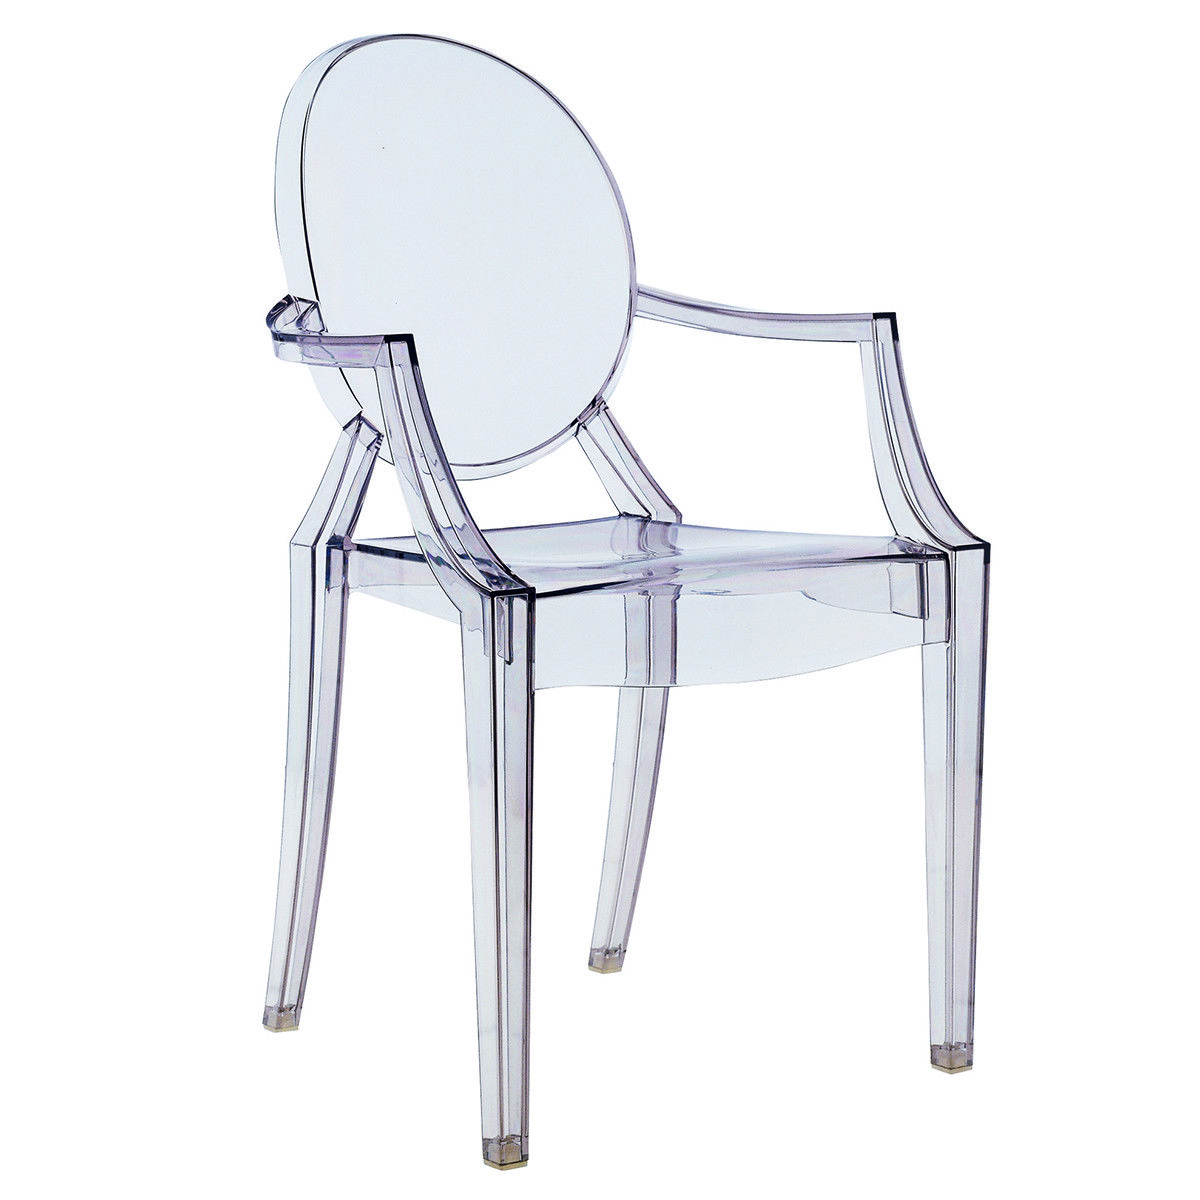 Poltrona Kartell Louis Ghost.Louis Ghost Chair For Kartell Designed By Philippe Starck